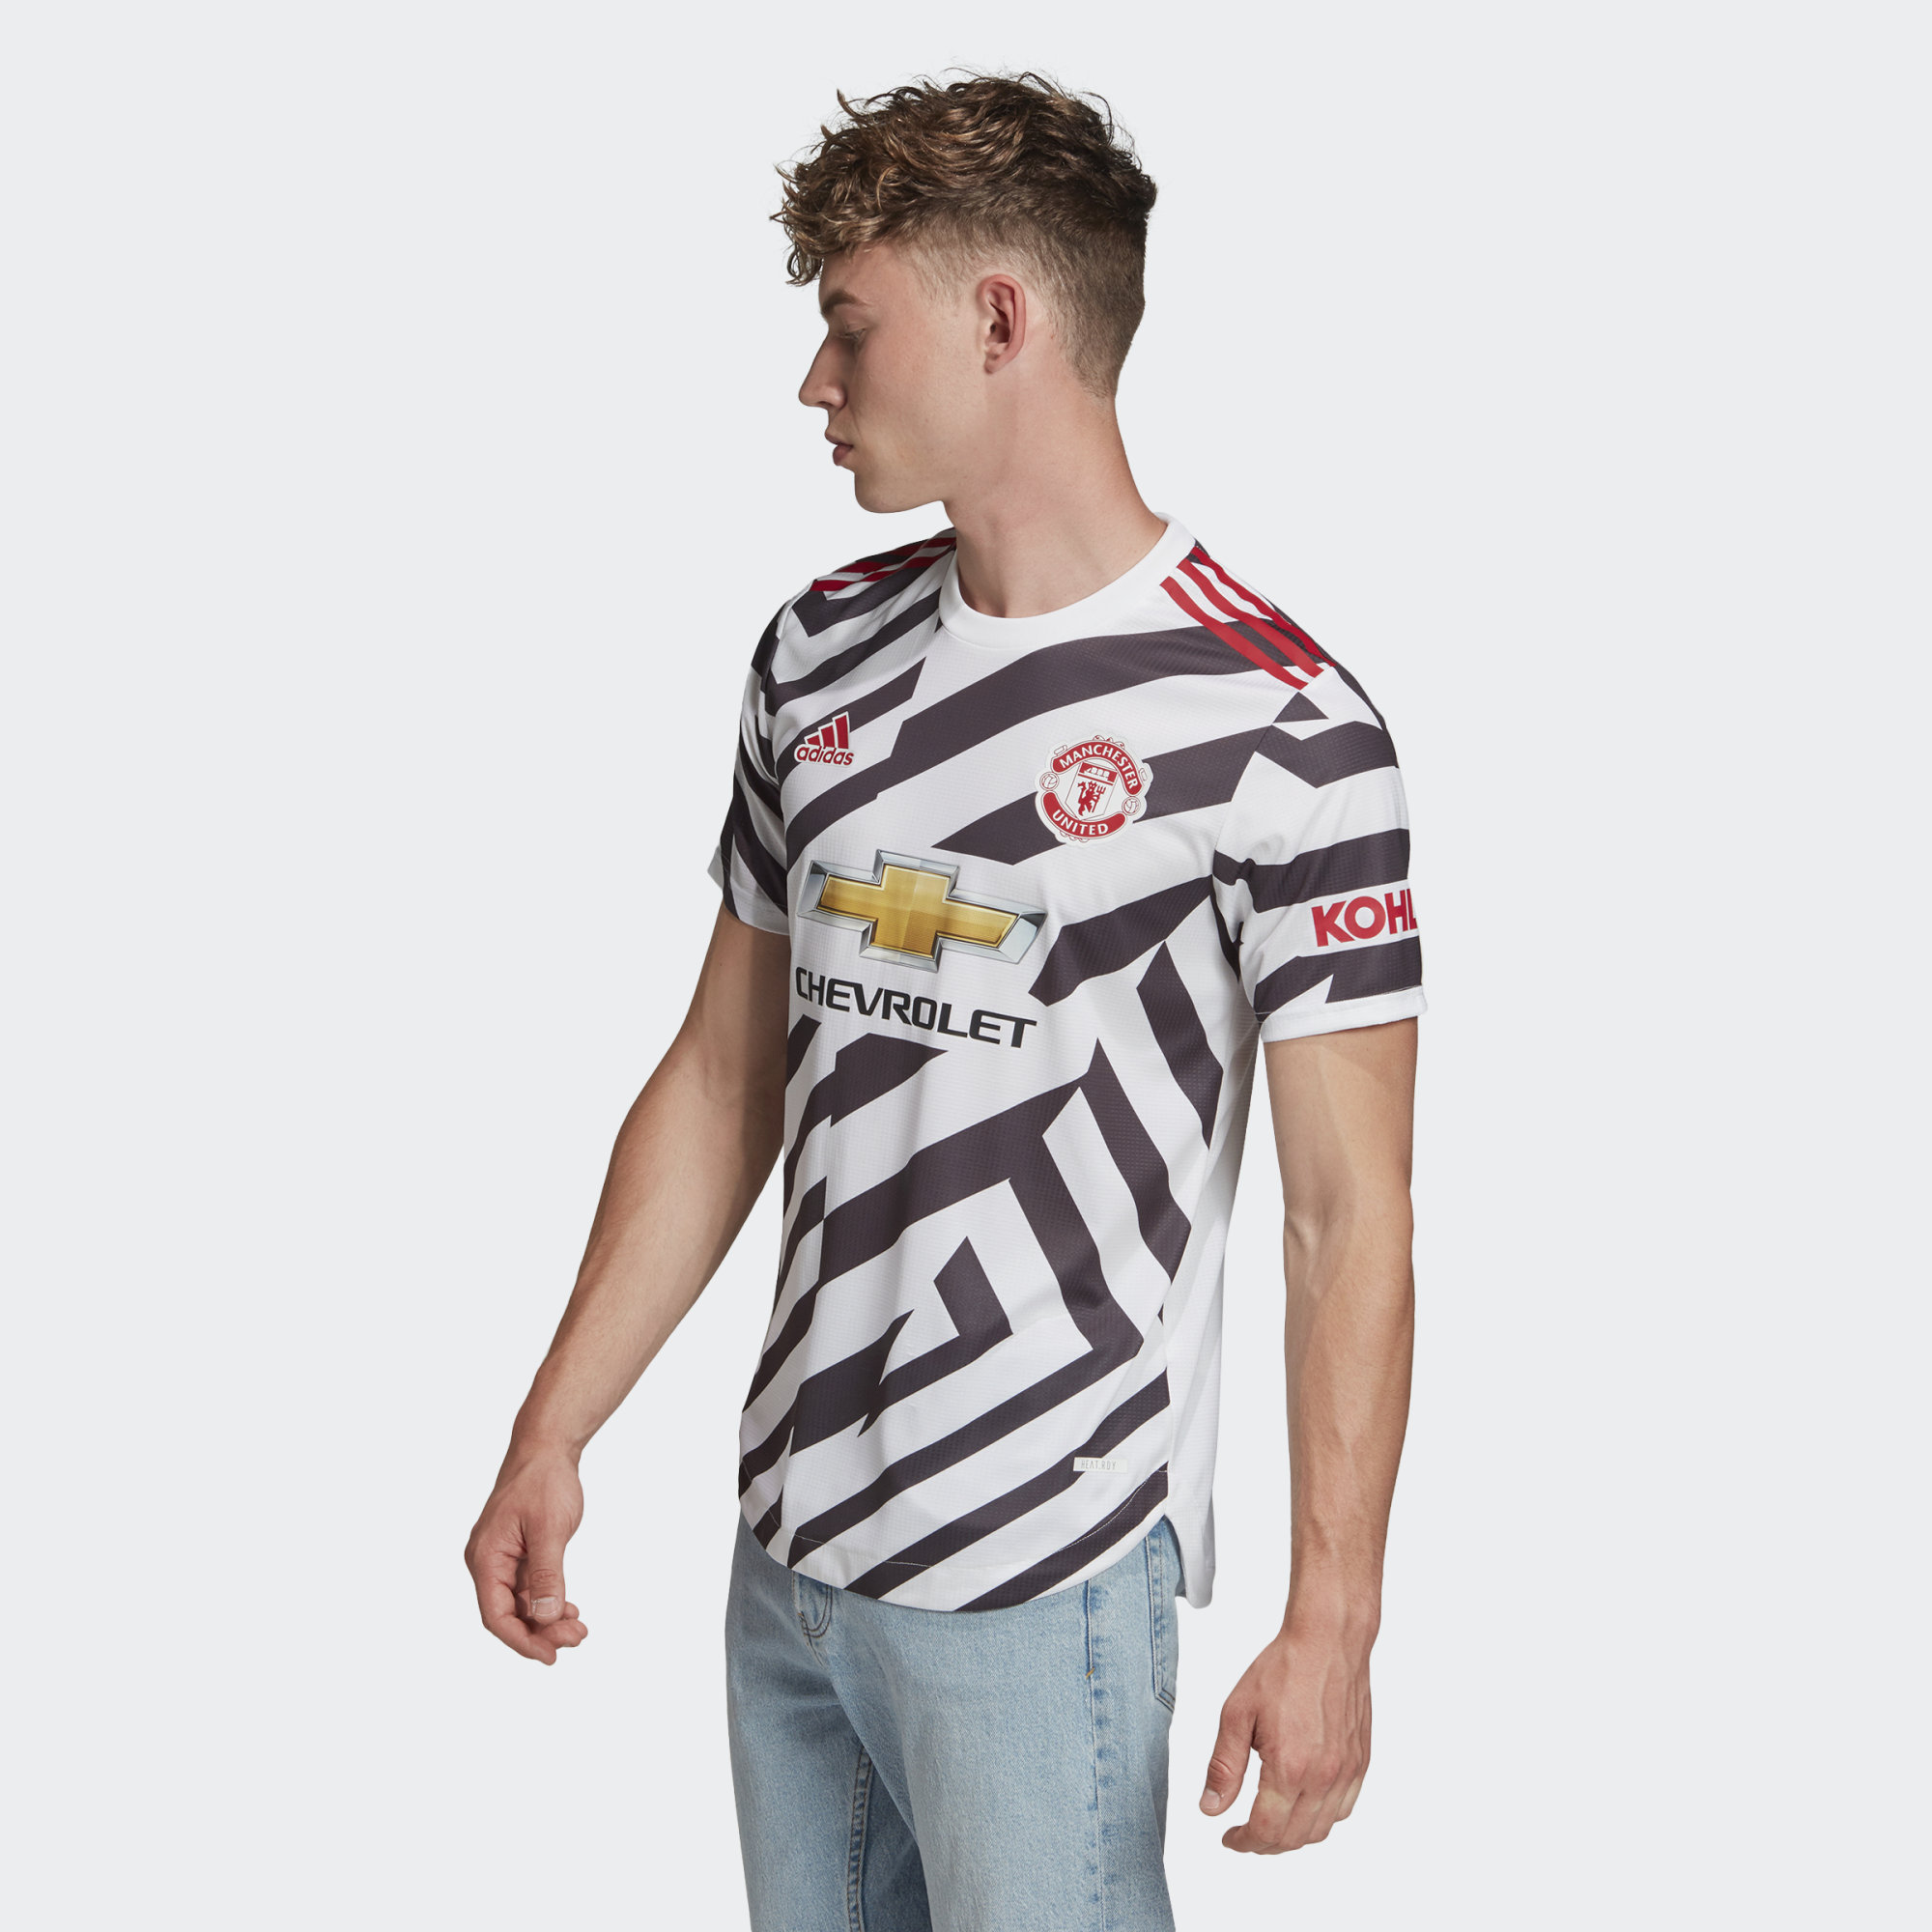 manchester united 2020 21 adidas third kit 20 21 kits football shirt blog manchester united 2020 21 adidas third